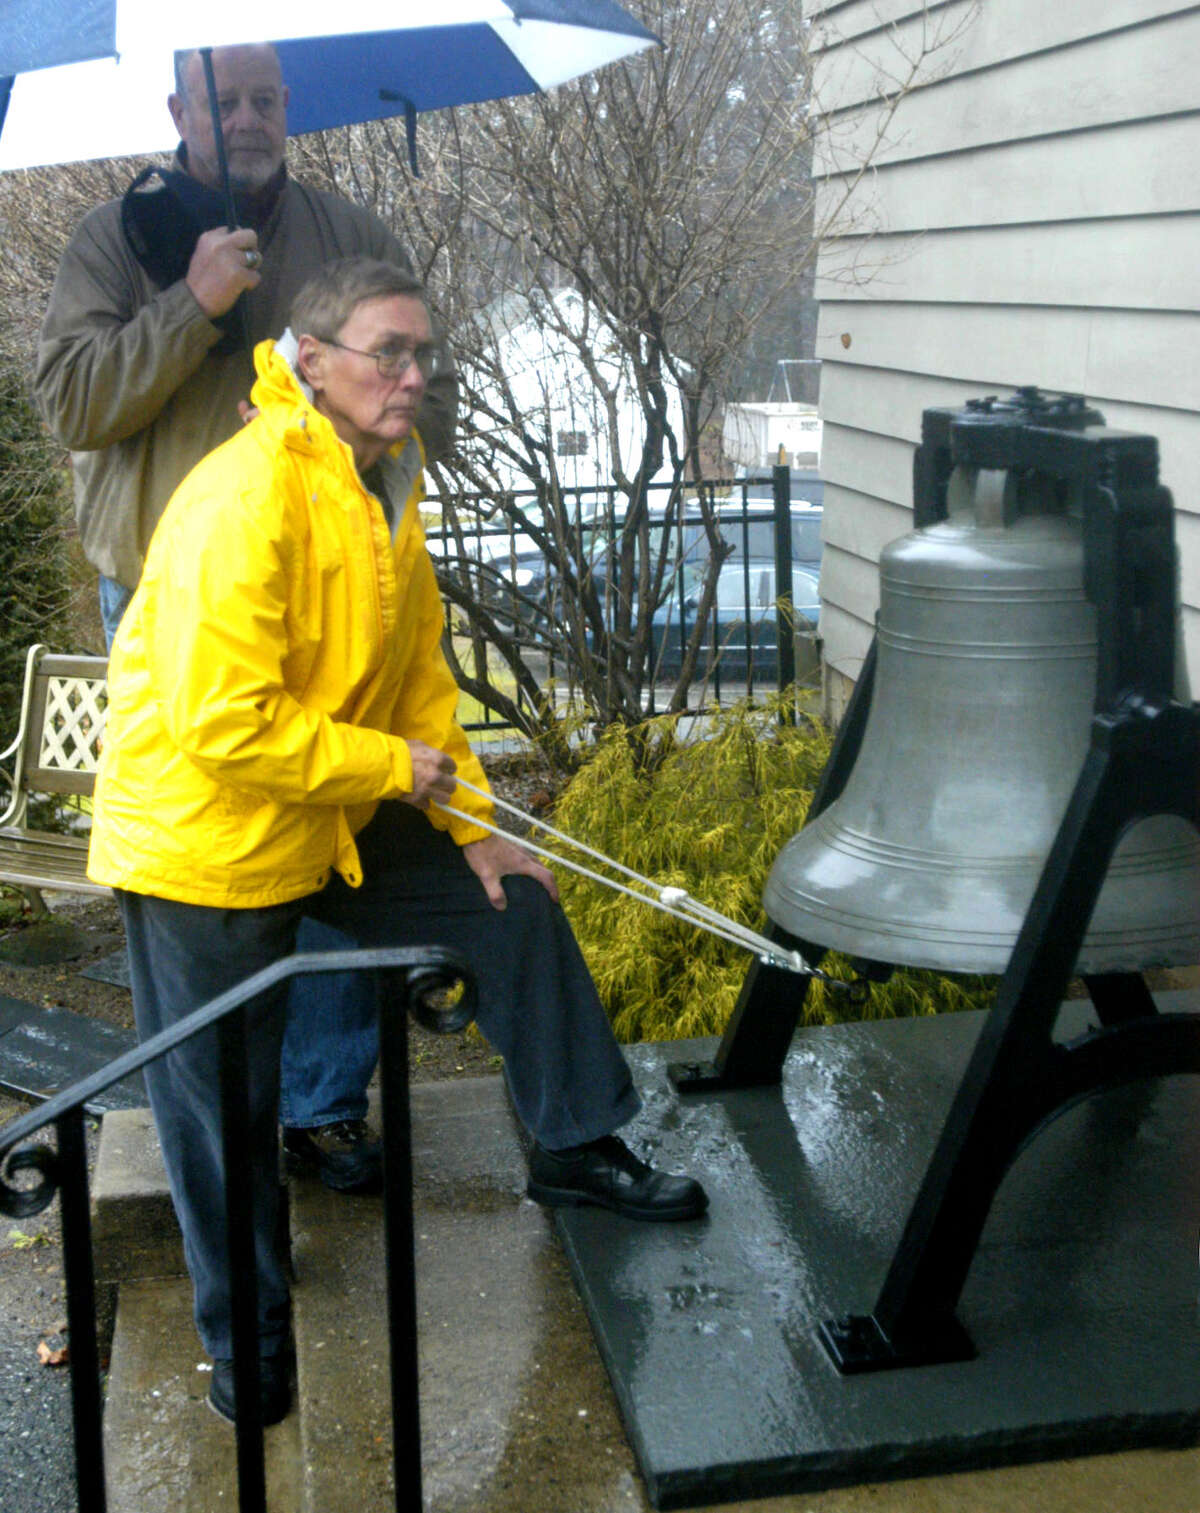 Art Putnam of the United Methodist Church of New Milford rings the church's historic bell 27 times Friday morning, Dec. 21, 2012 as the Rev. Paul Fleck, nearby, reads the names of those who died seven days earlier as the result of tragic shootings at Sandy Hook Elementary School in Newtown. Shielding Mr.Putnam from a steady rain is fellow church member Steve Kolitz.